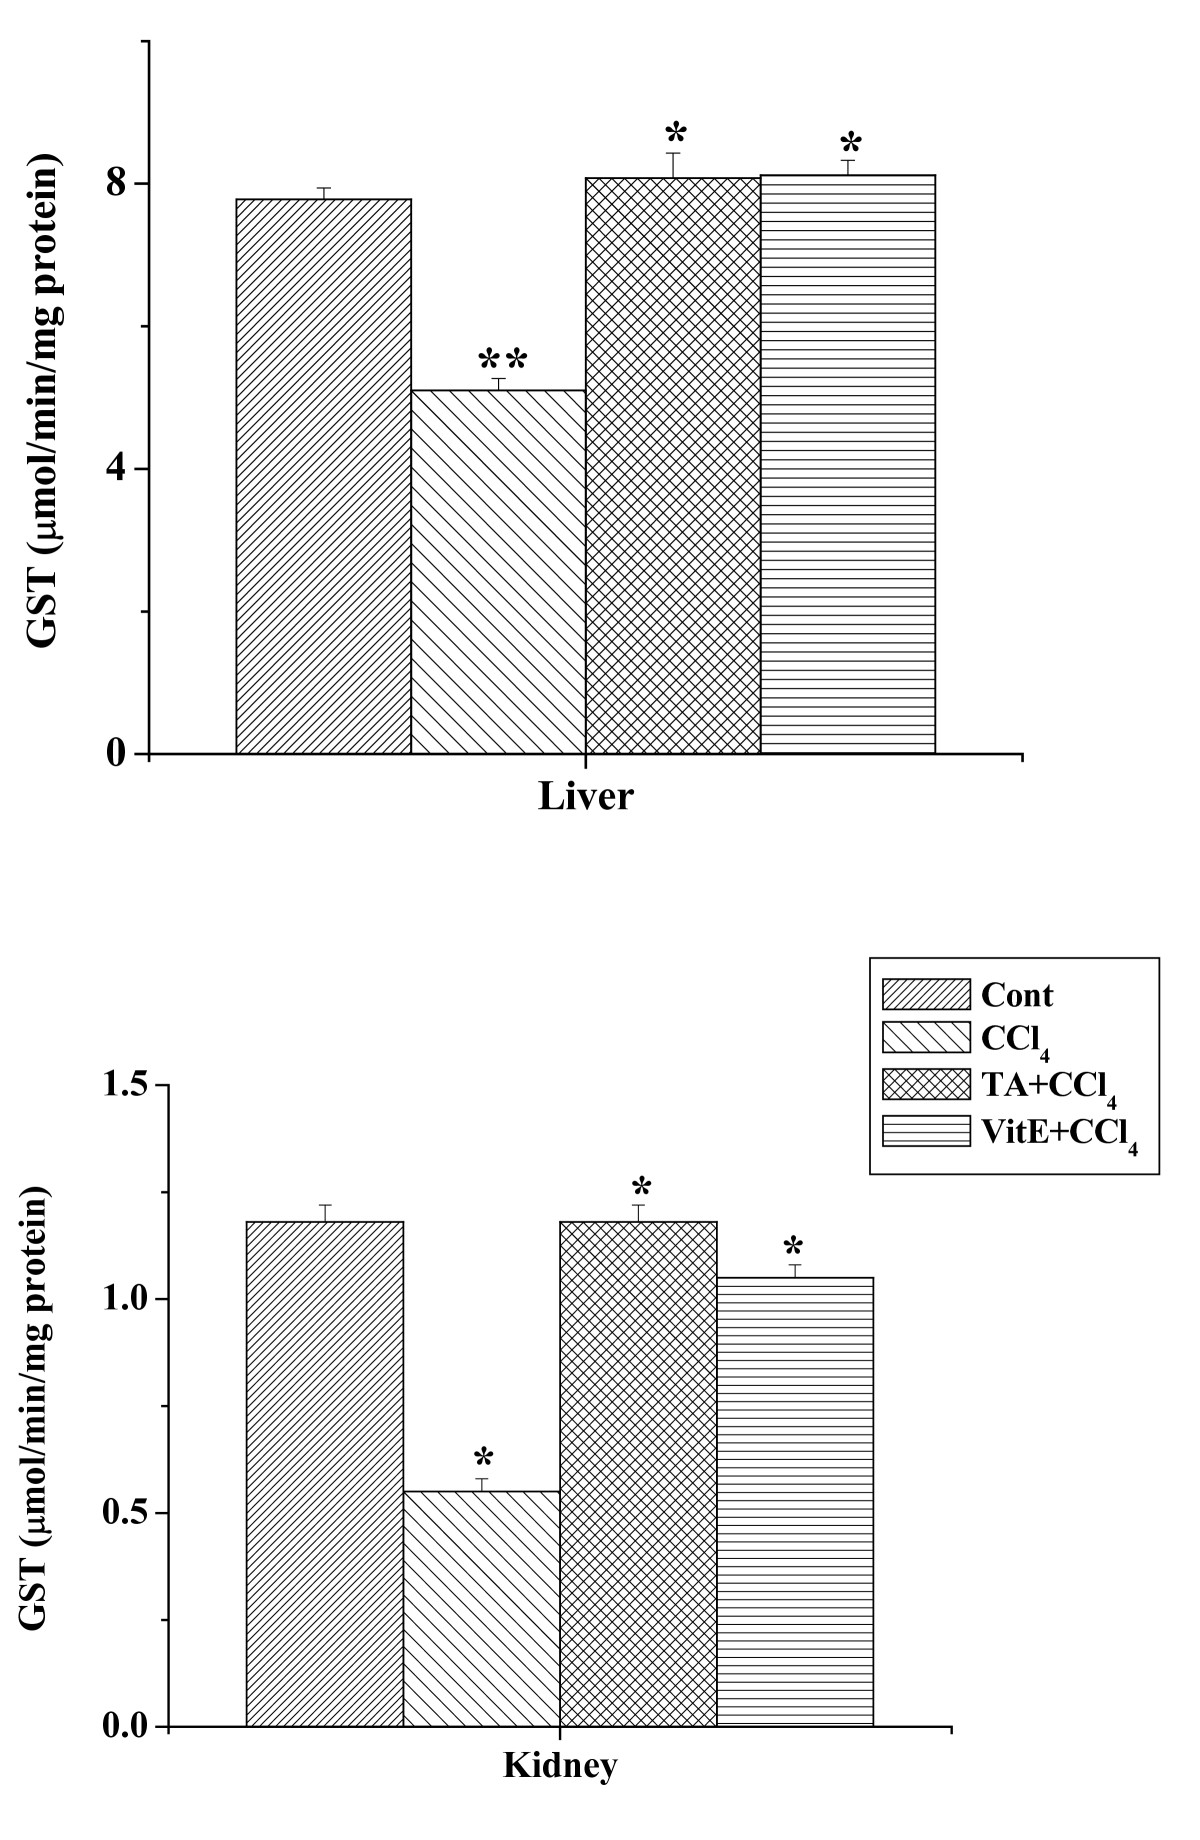 http://static-content.springer.com/image/art%3A10.1186%2F1472-6882-6-33/MediaObjects/12906_2006_Article_107_Fig7_HTML.jpg